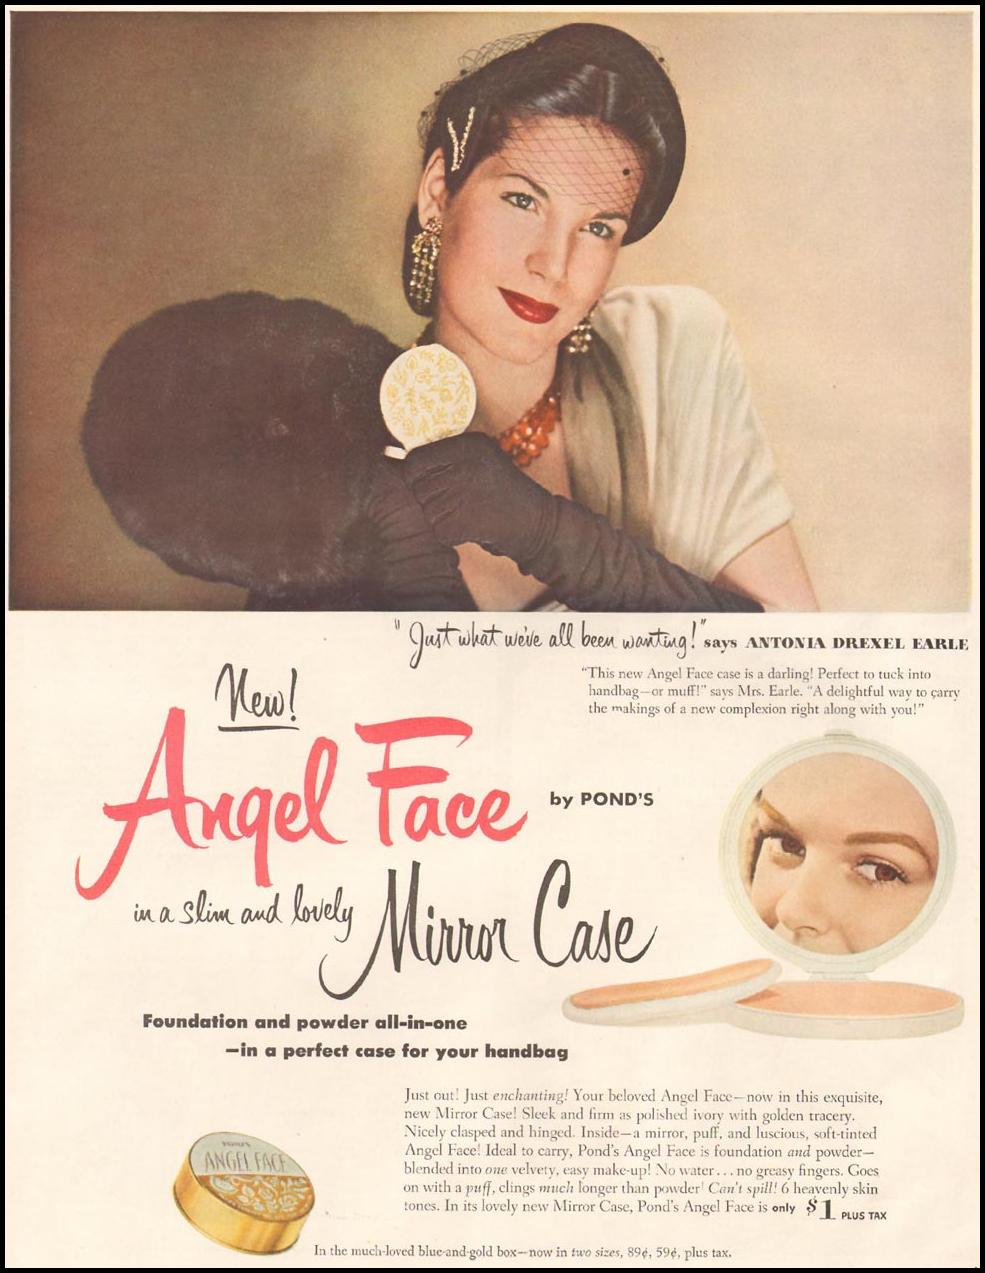 POND'S ANGEL FACE COSMETICS LADIES' HOME JOURNAL 11/01/1950 p. 16